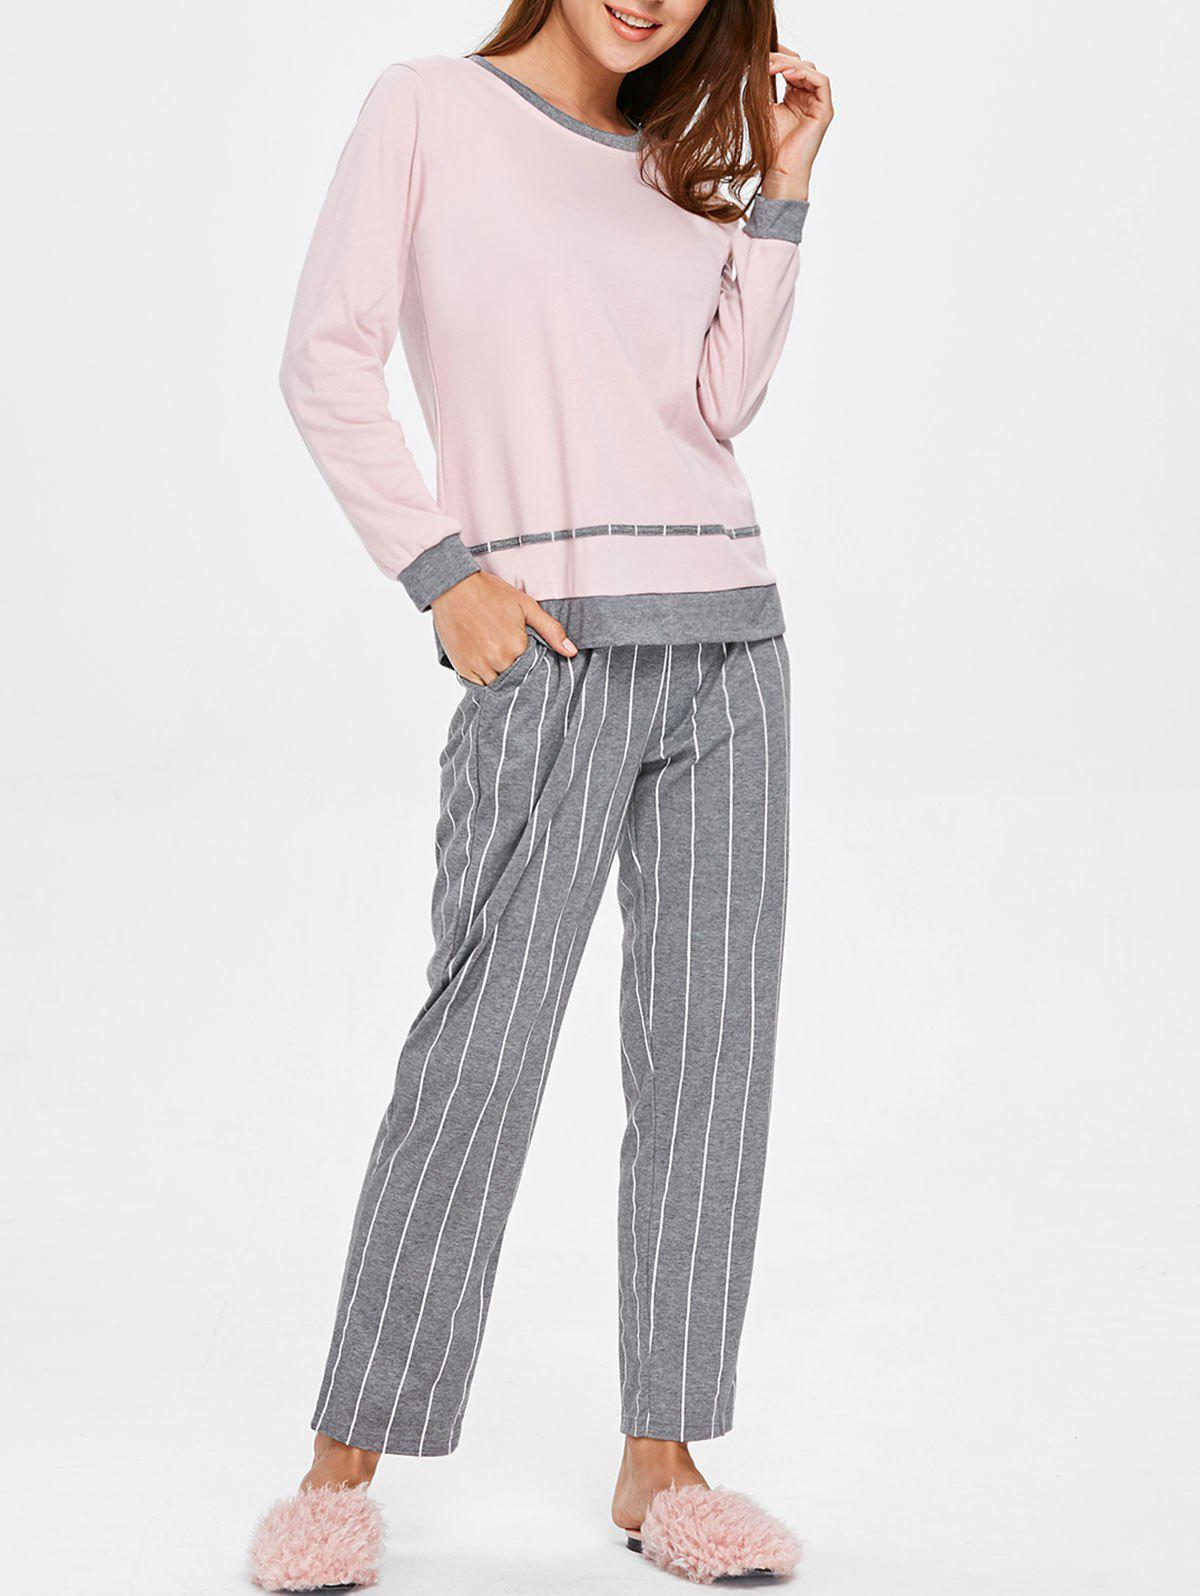 Store Sleep Set Color Block Top with Striped Pants